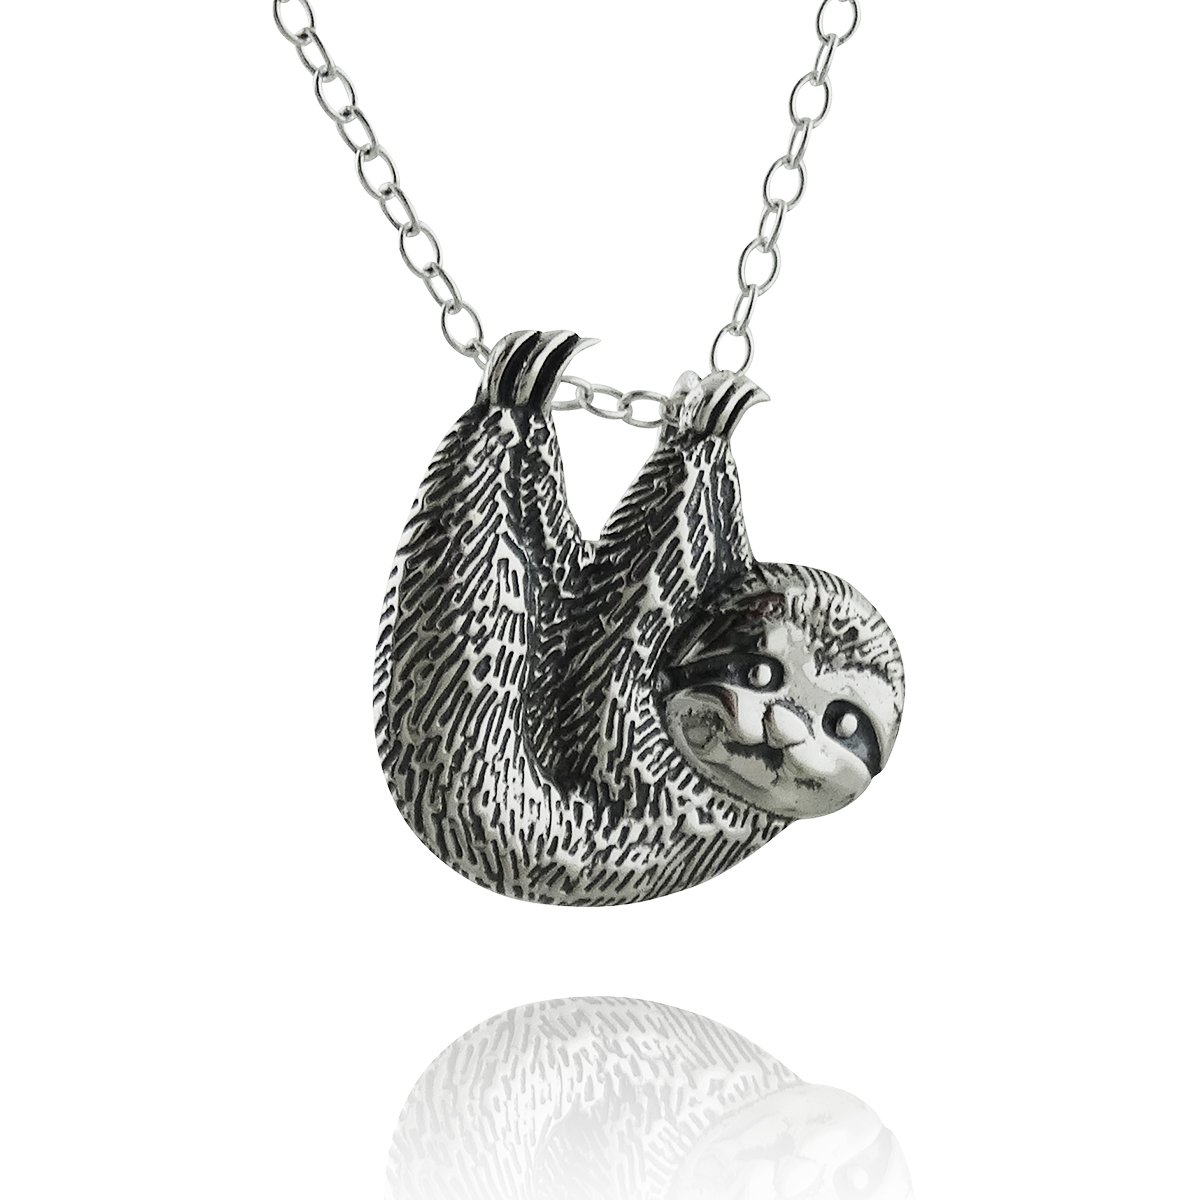 Sterling Silver Textured Sloth Slider Pendant Necklace, 18'' Cable Chain